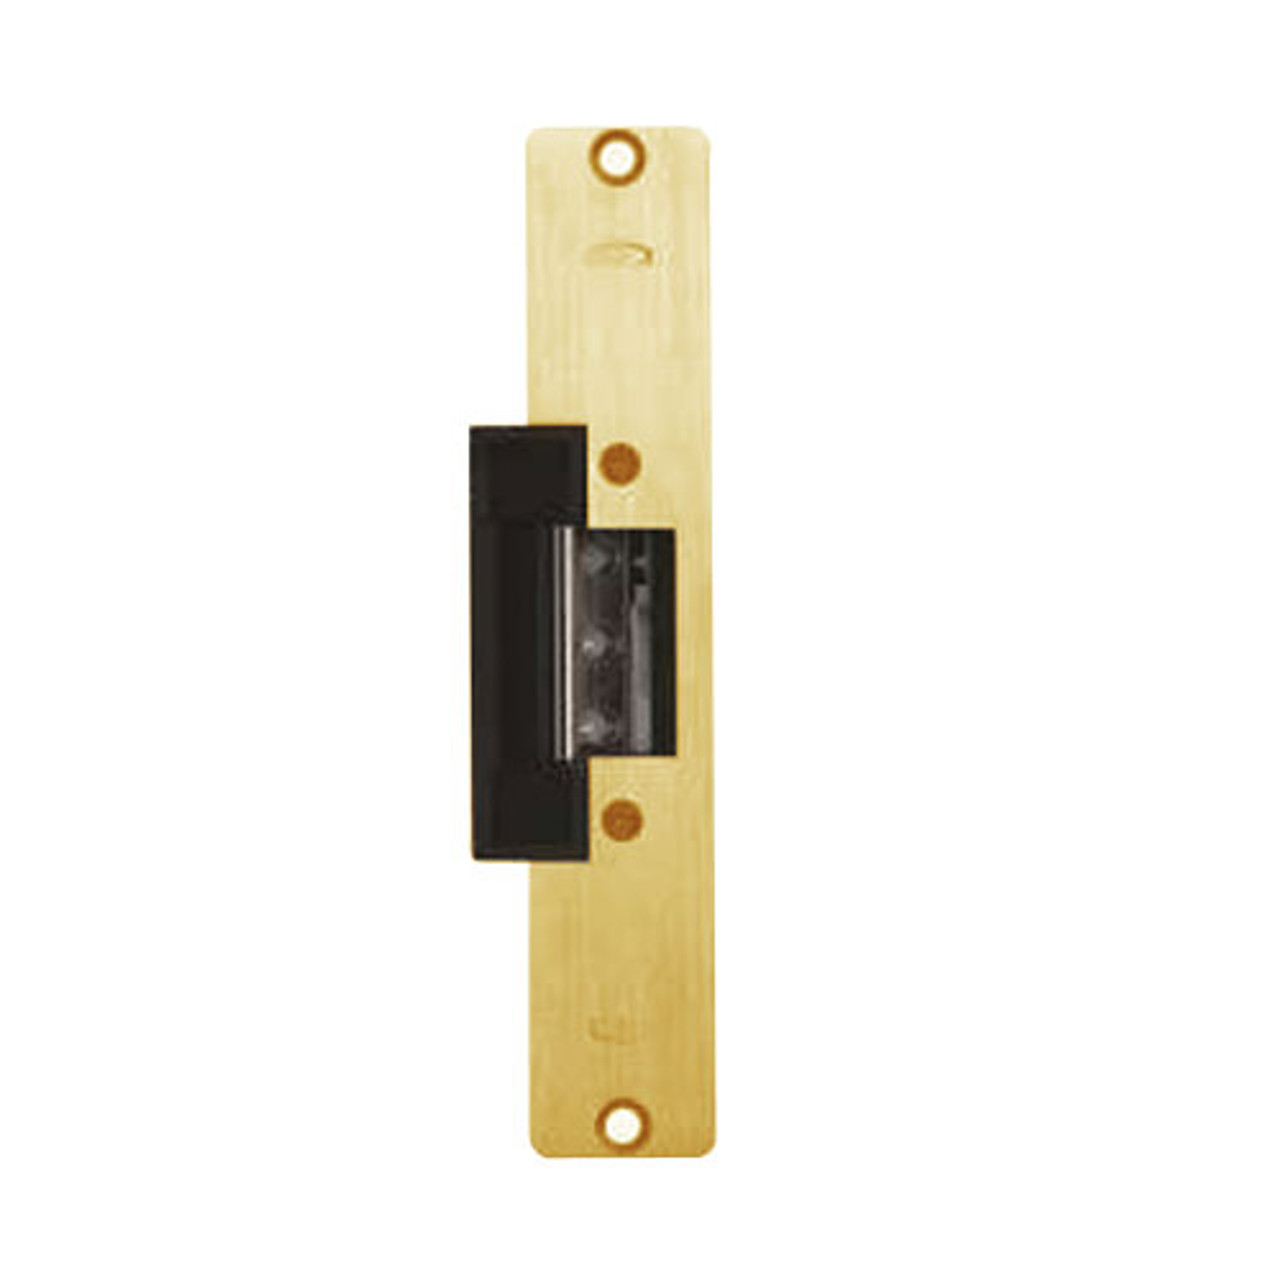 2678-US10-12DC Trine Light Commercial Adjustable 2000 Series Electric Strikes in Satin Bronze Finish